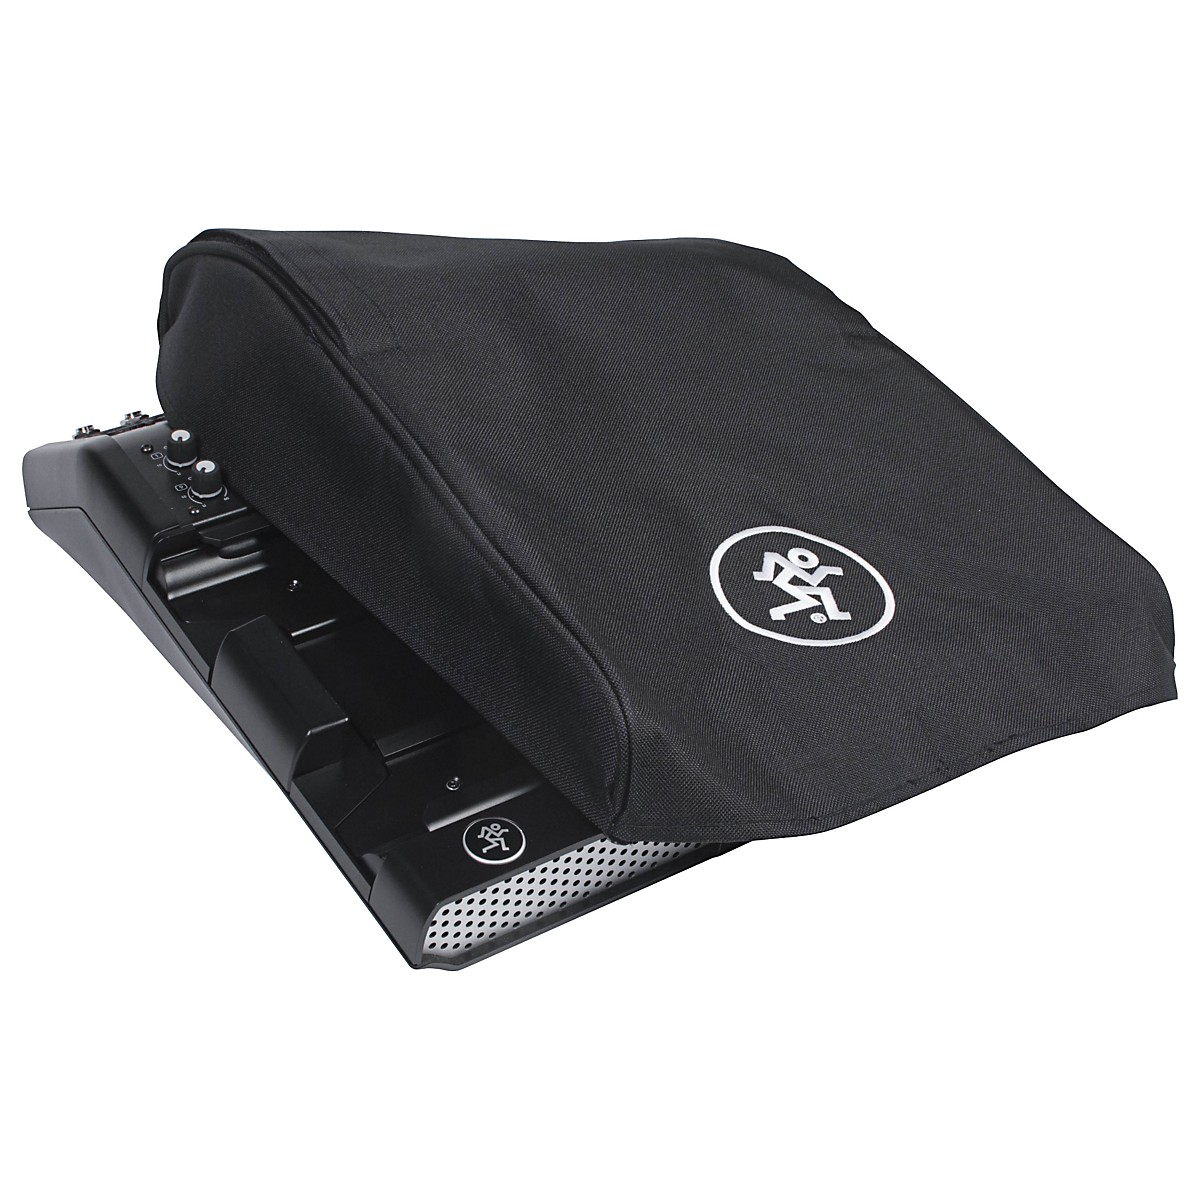 Mackie Cover for Mackie DL1608 iPad Mixer